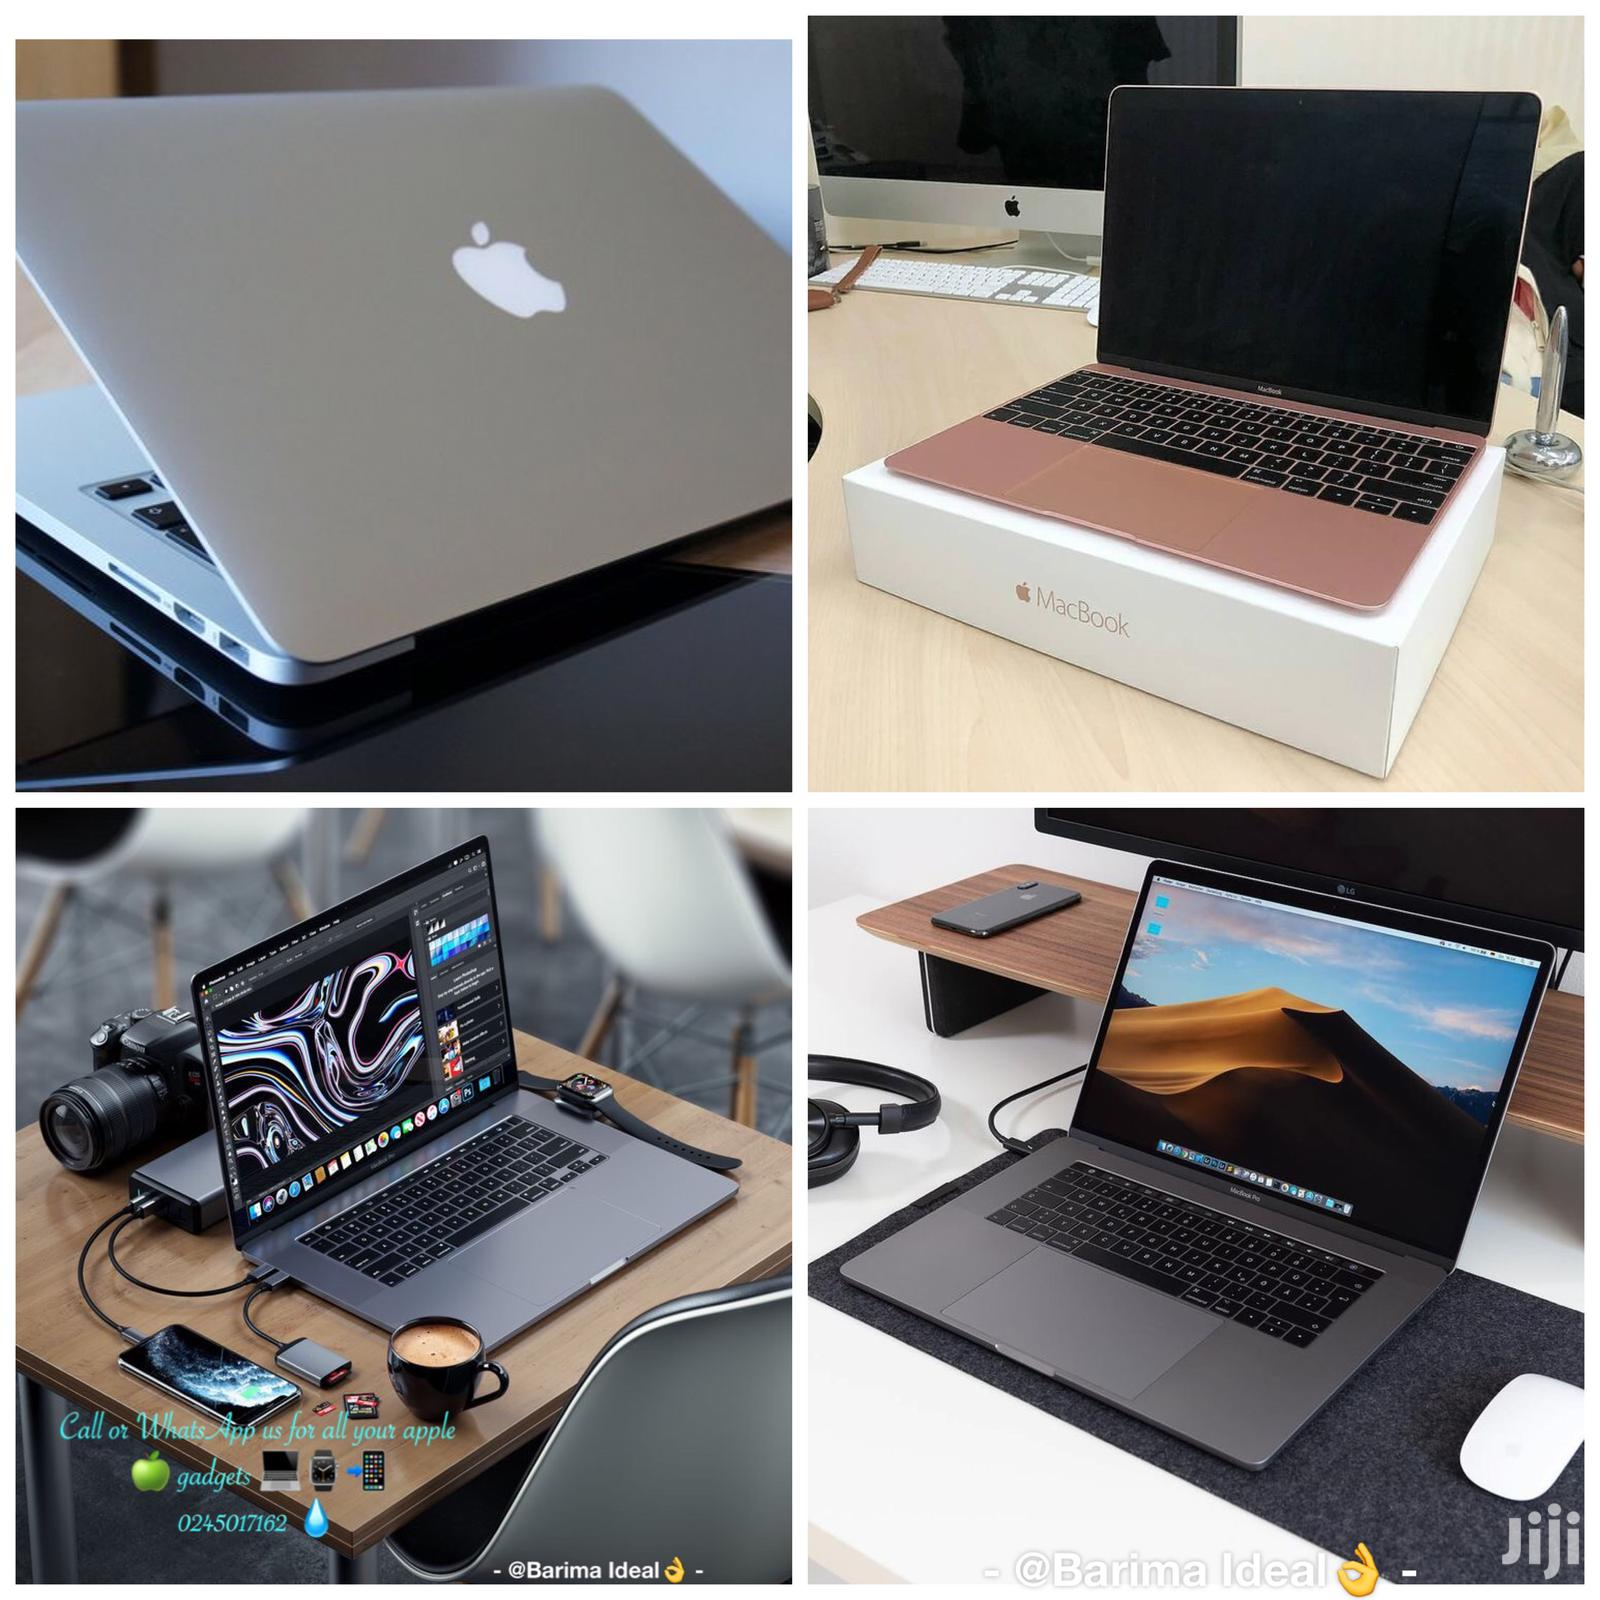 New Laptop Apple MacBook Pro 2019 16GB Intel Core I9 SSD 1T | Laptops & Computers for sale in Adenta Municipal, Greater Accra, Ghana